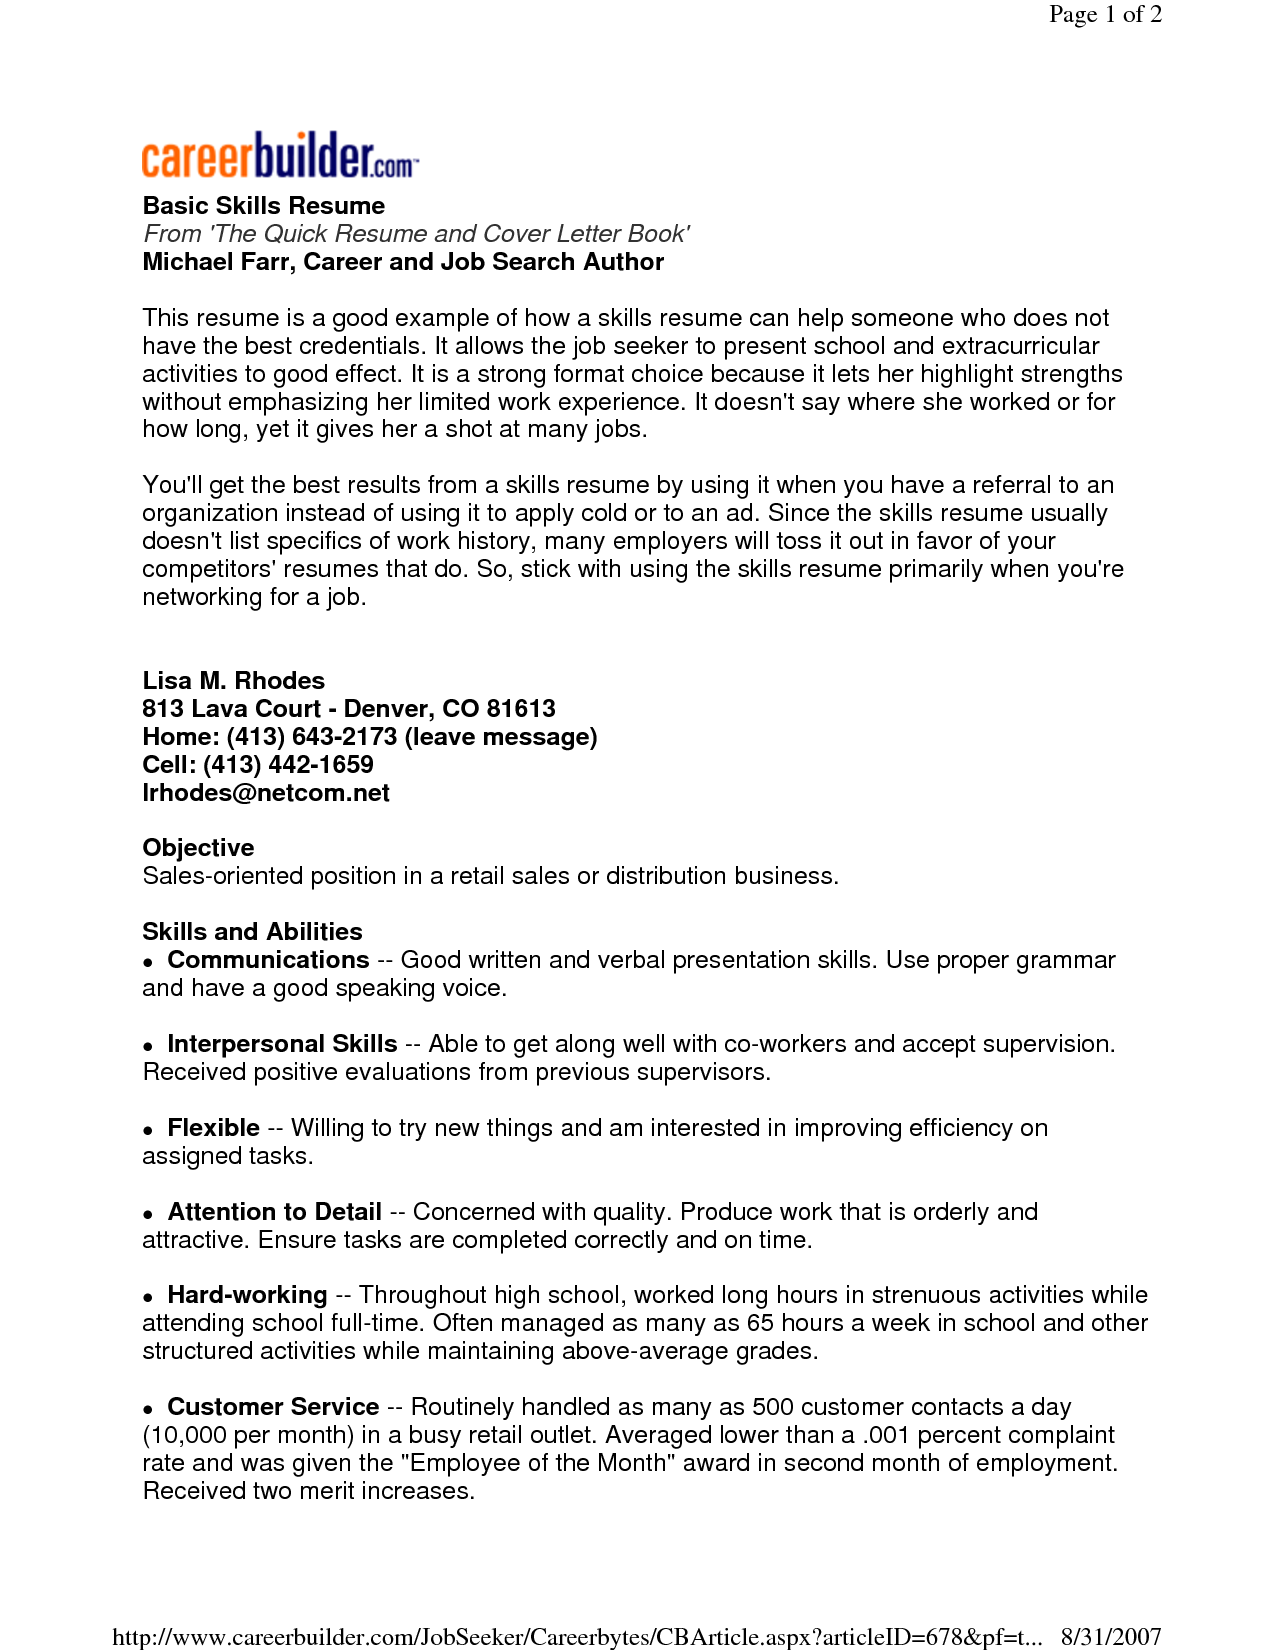 Resume Objective Sales Custom Basic Resume Examples Skills  Httpwww.resumecareerbasic .